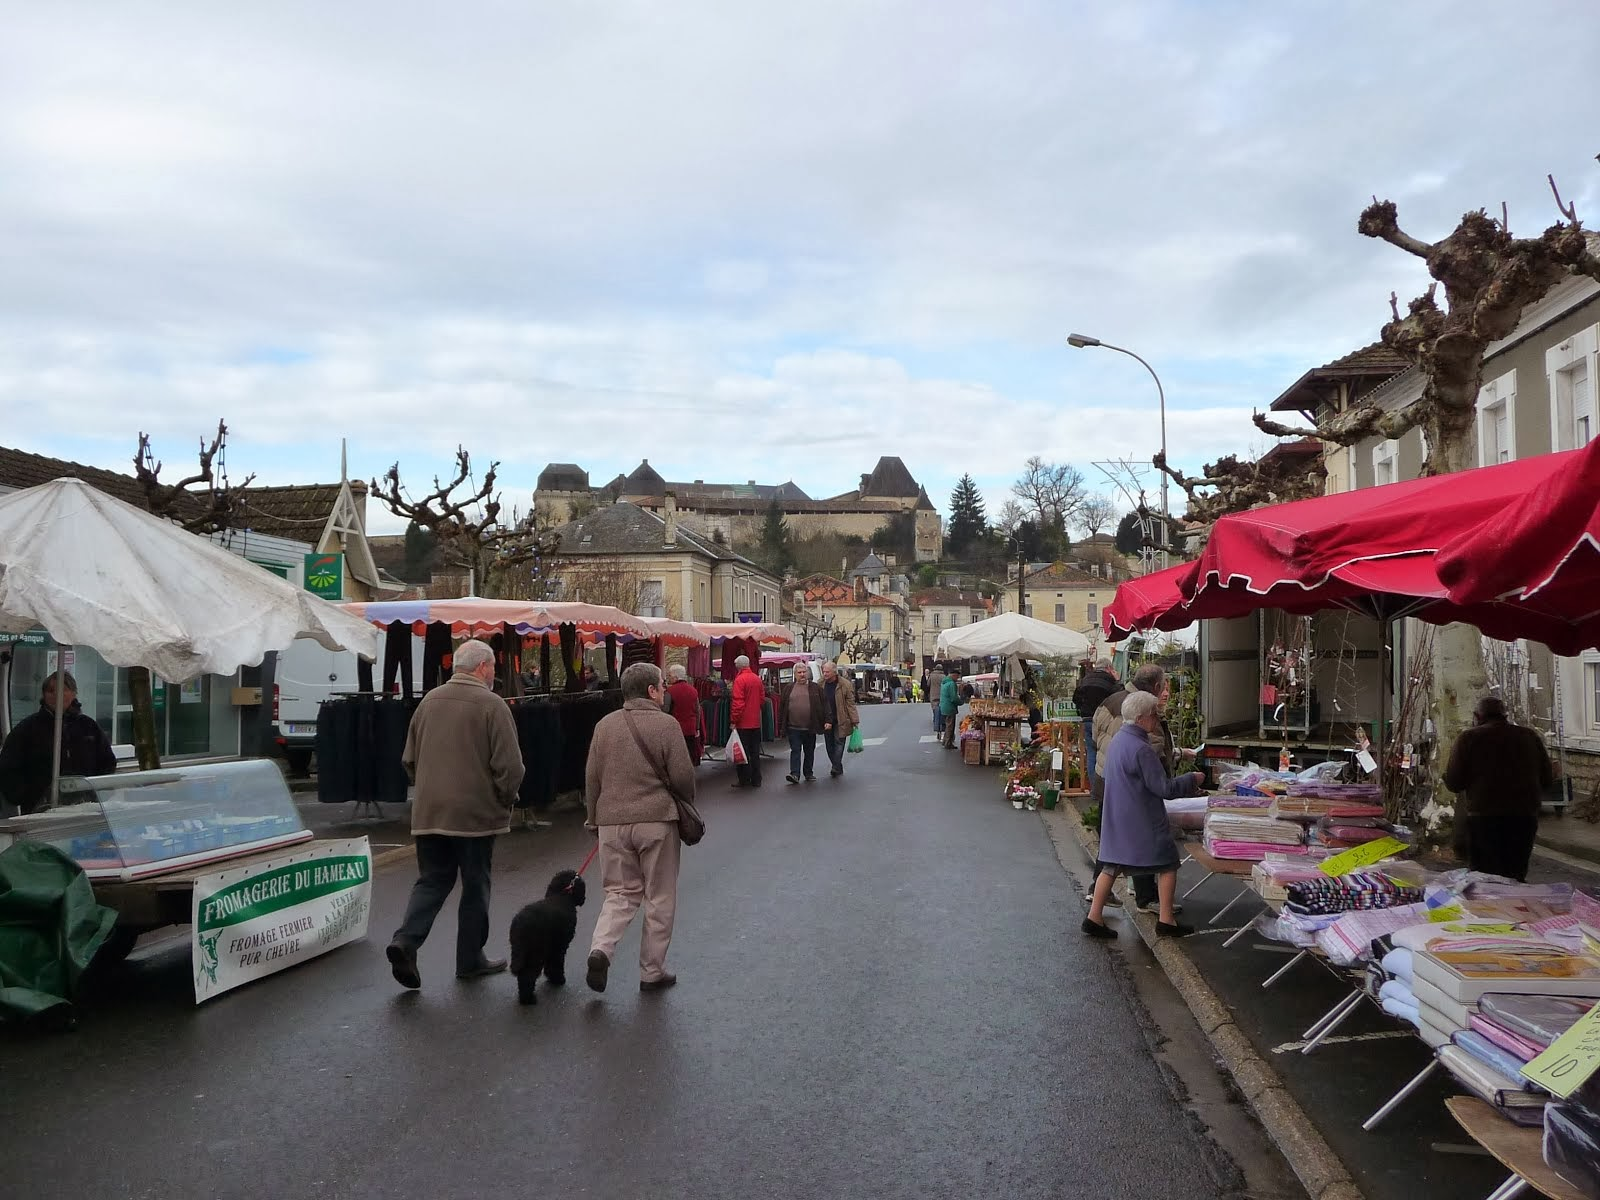 Another market view in Chalais